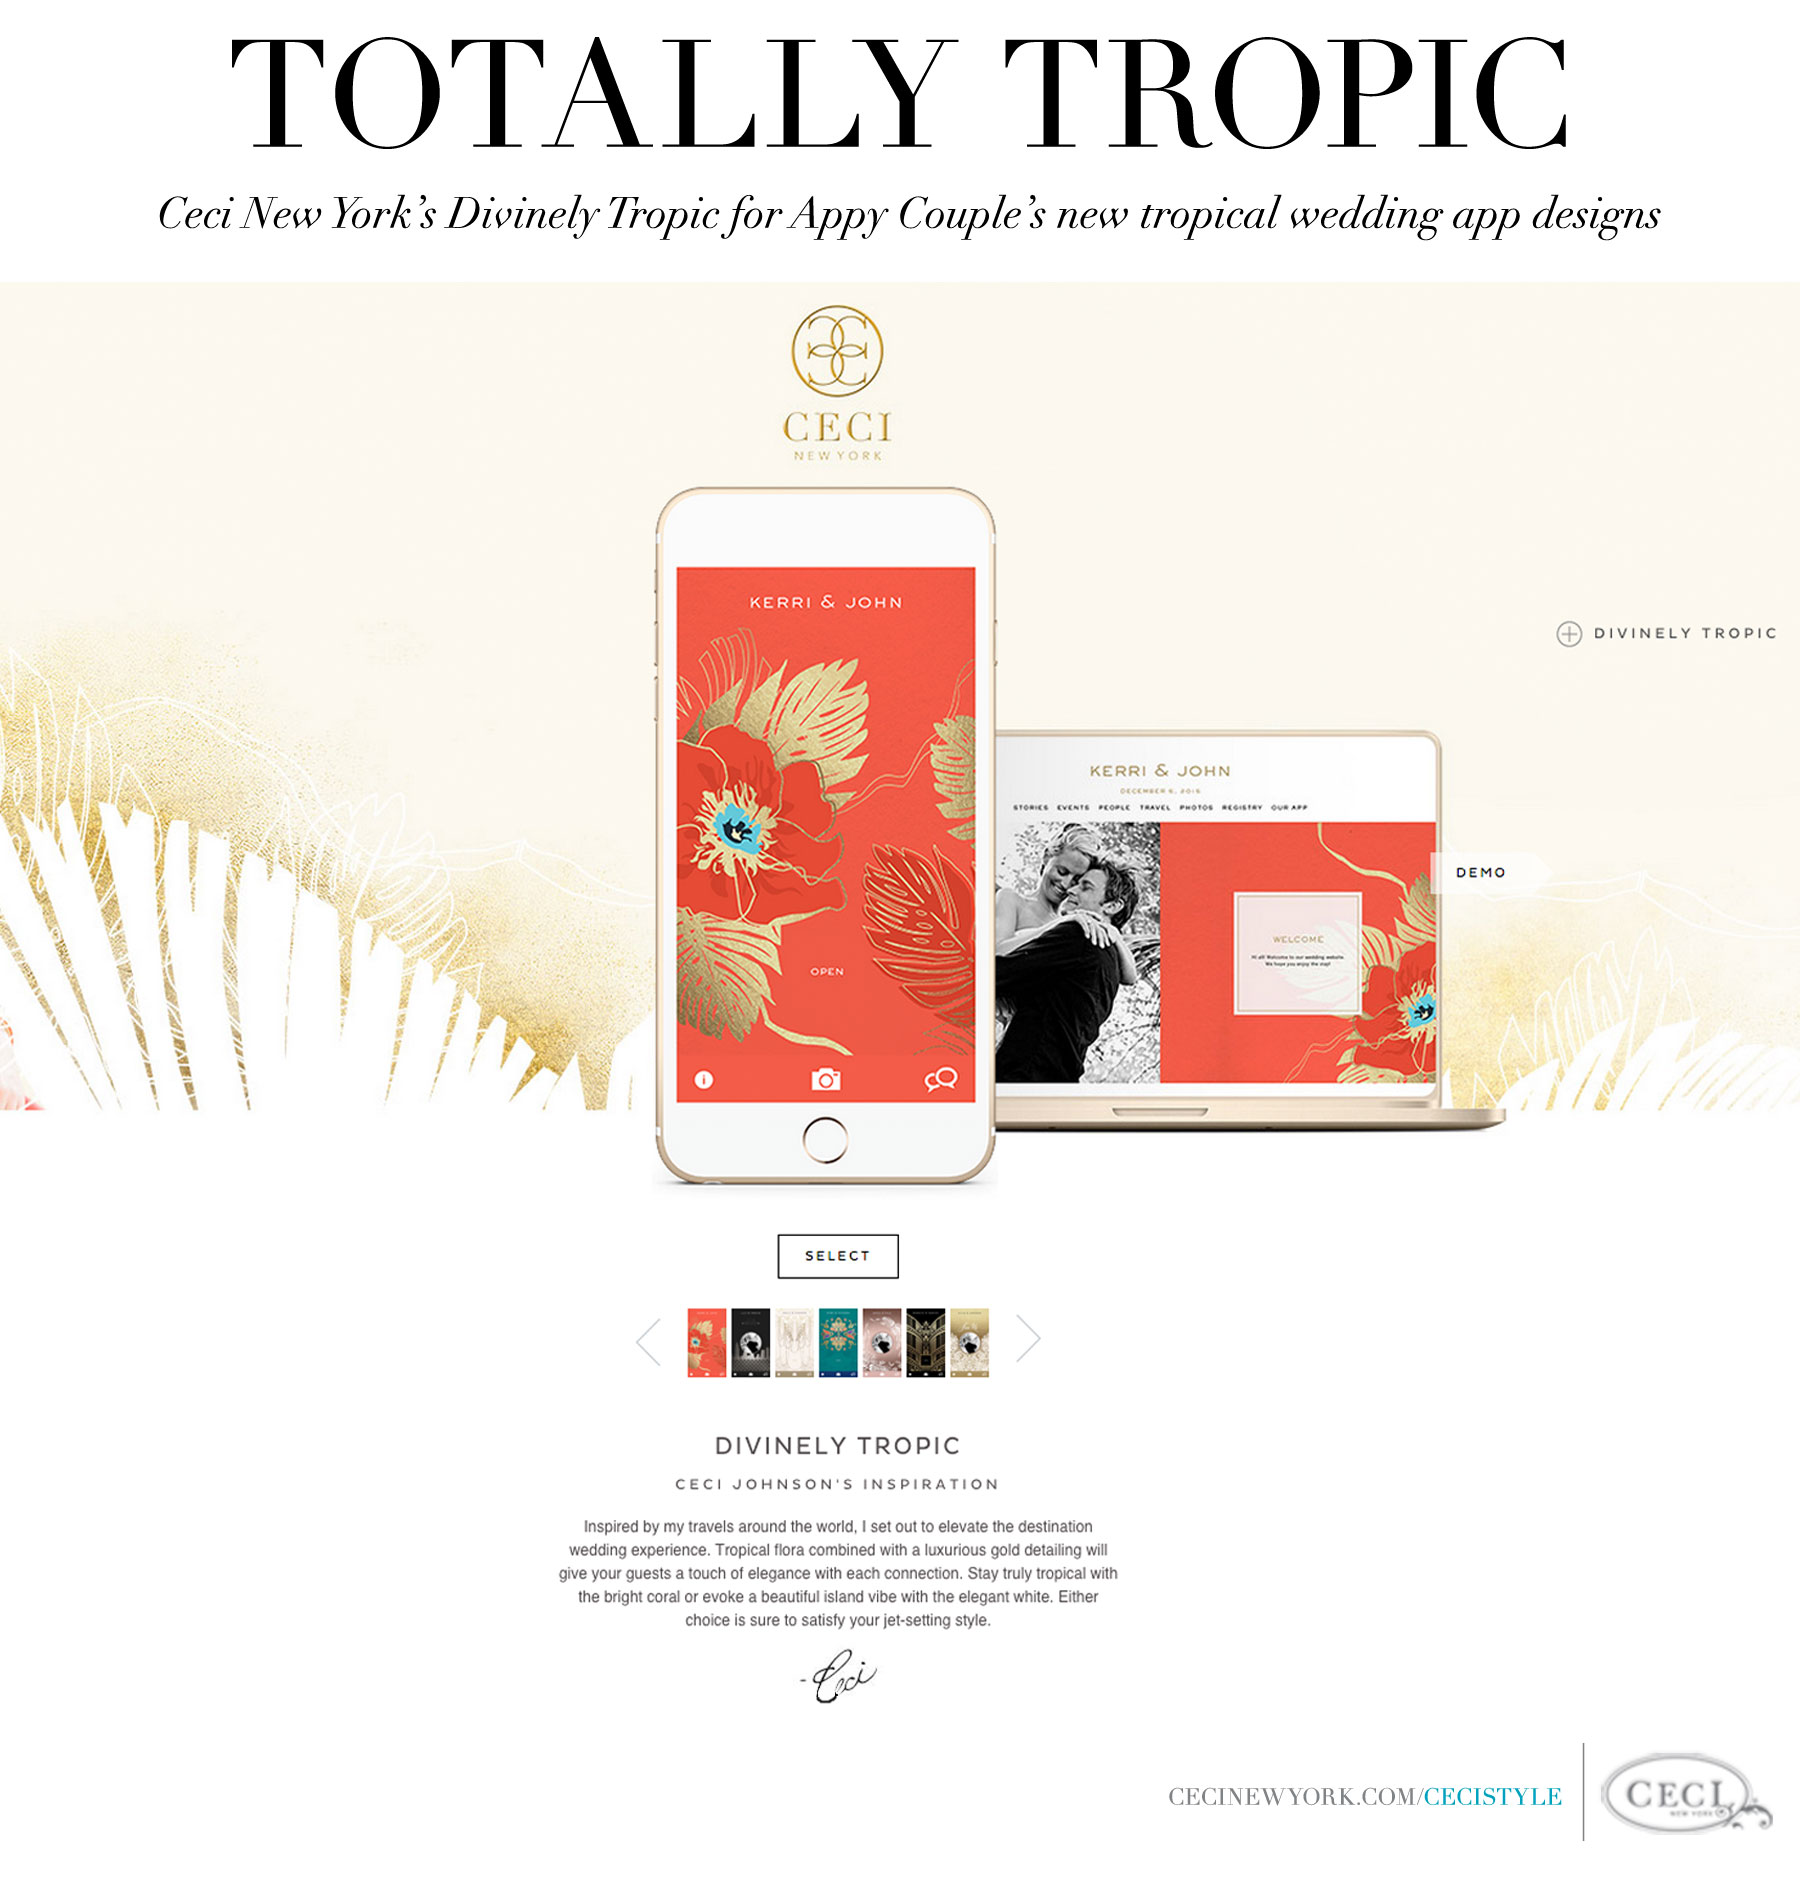 Ceci New York's Divinely Tropic for Appy Couple's New Tropical Wedding App Designs